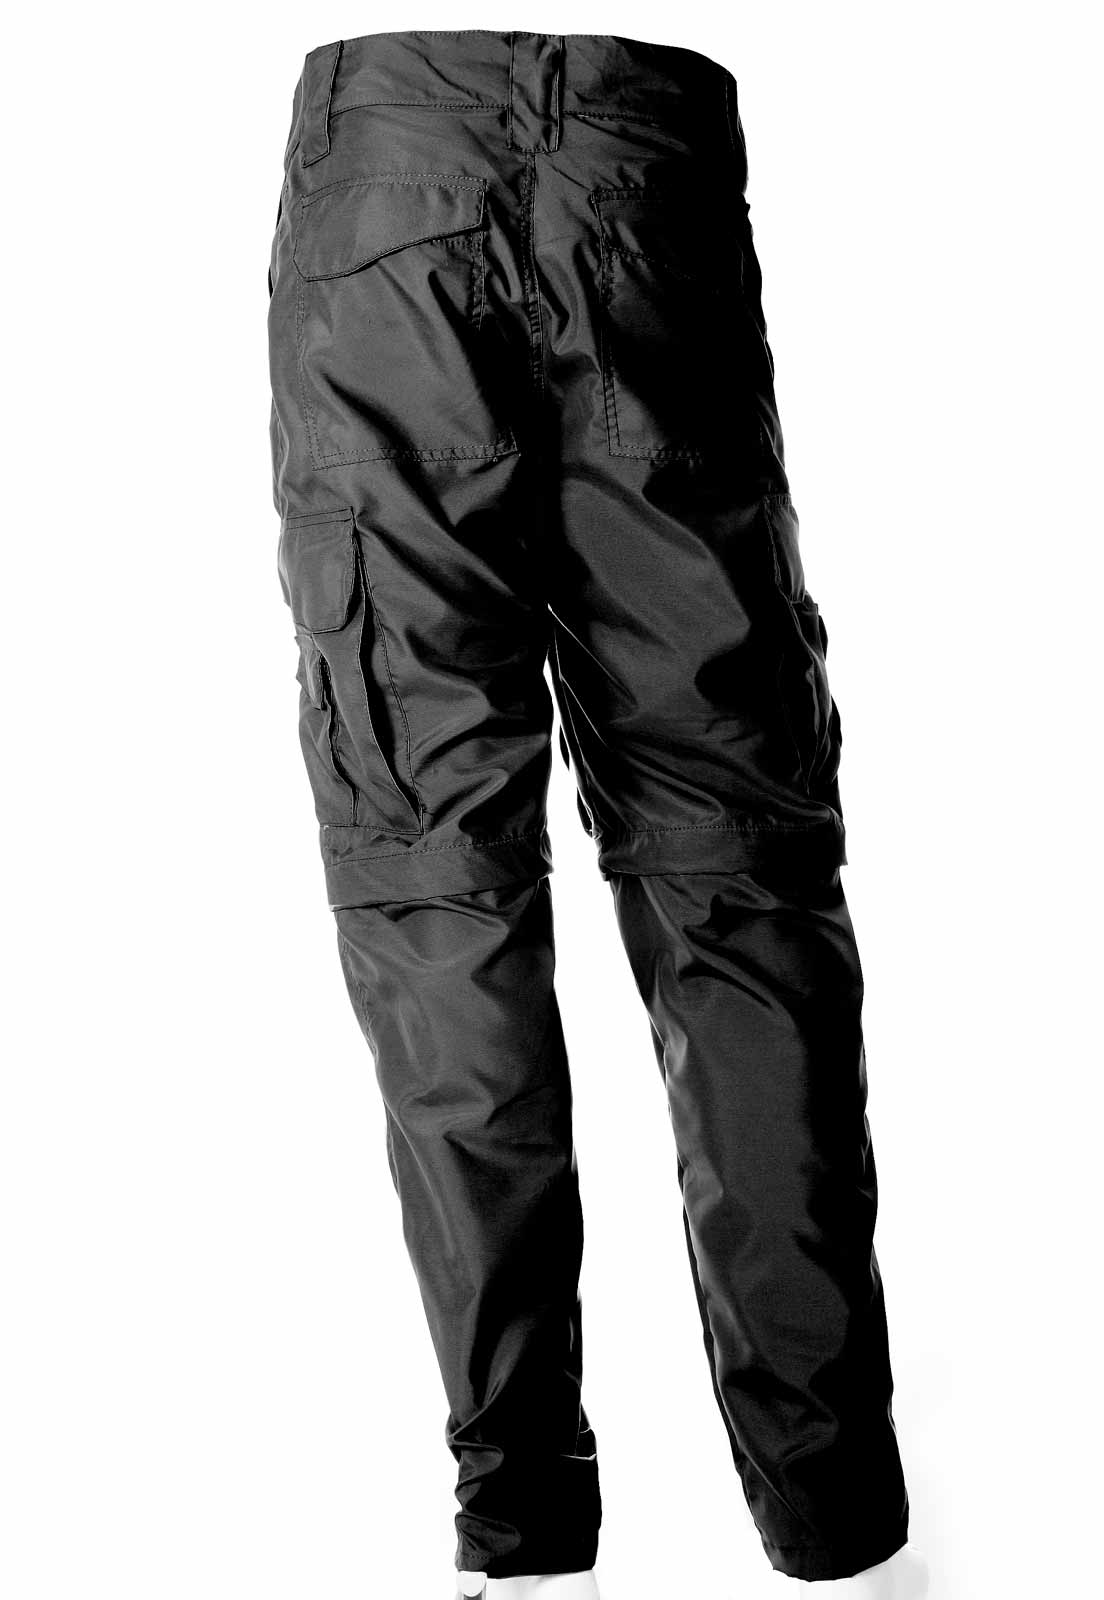 Calça-Bermuda Cores Preta UltraLight Masculina  - REAL HUNTER OUTDOORS